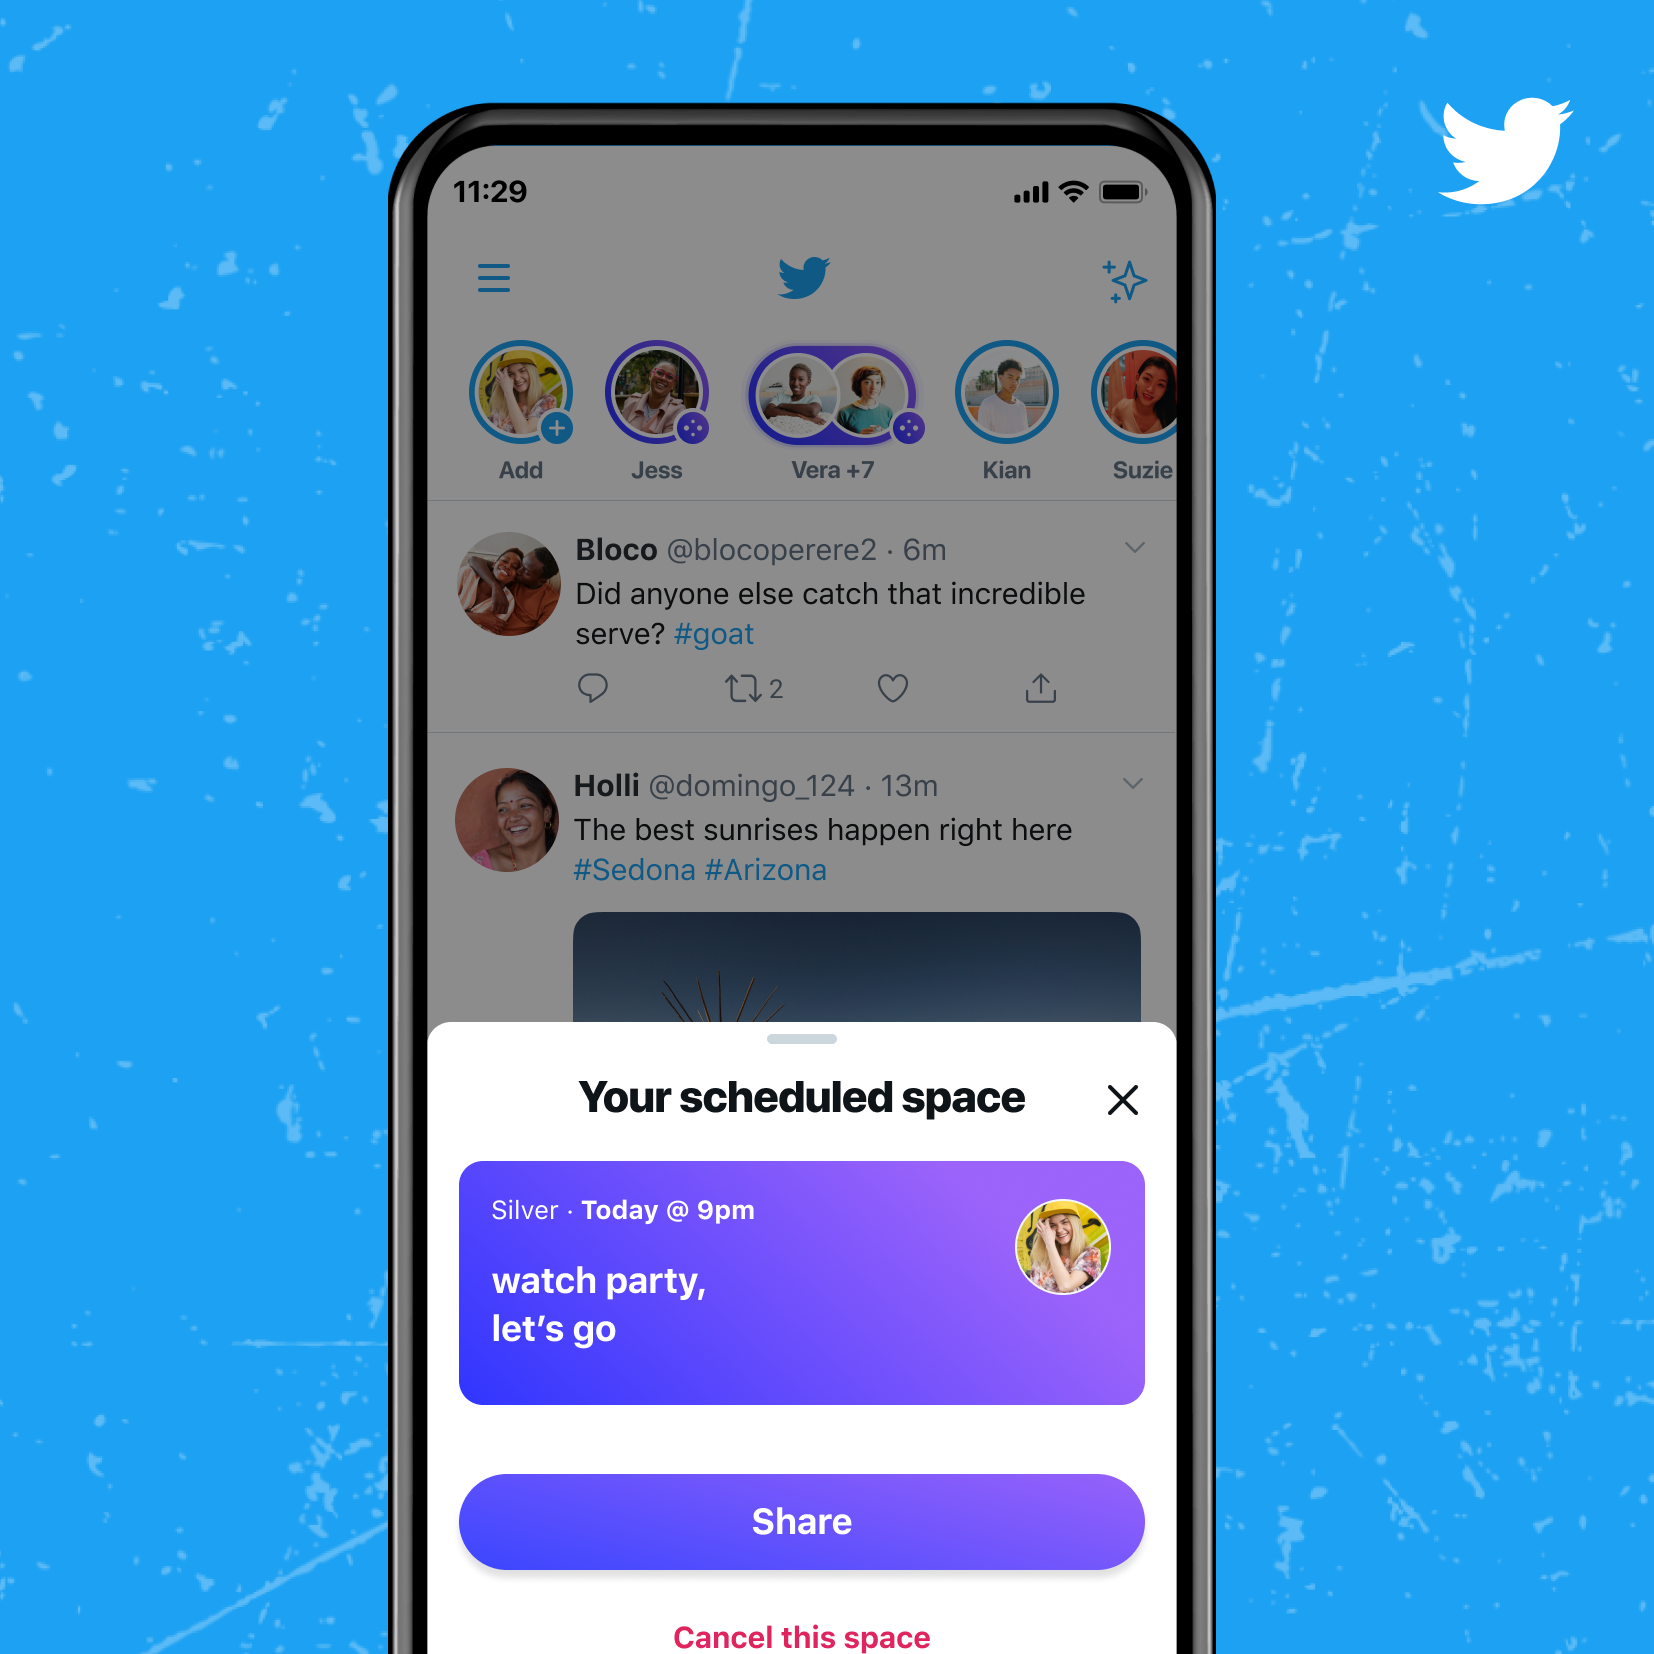 - 04 05 2021 10 09 56 7910342 - Here's how to join or create a Space on Twitter